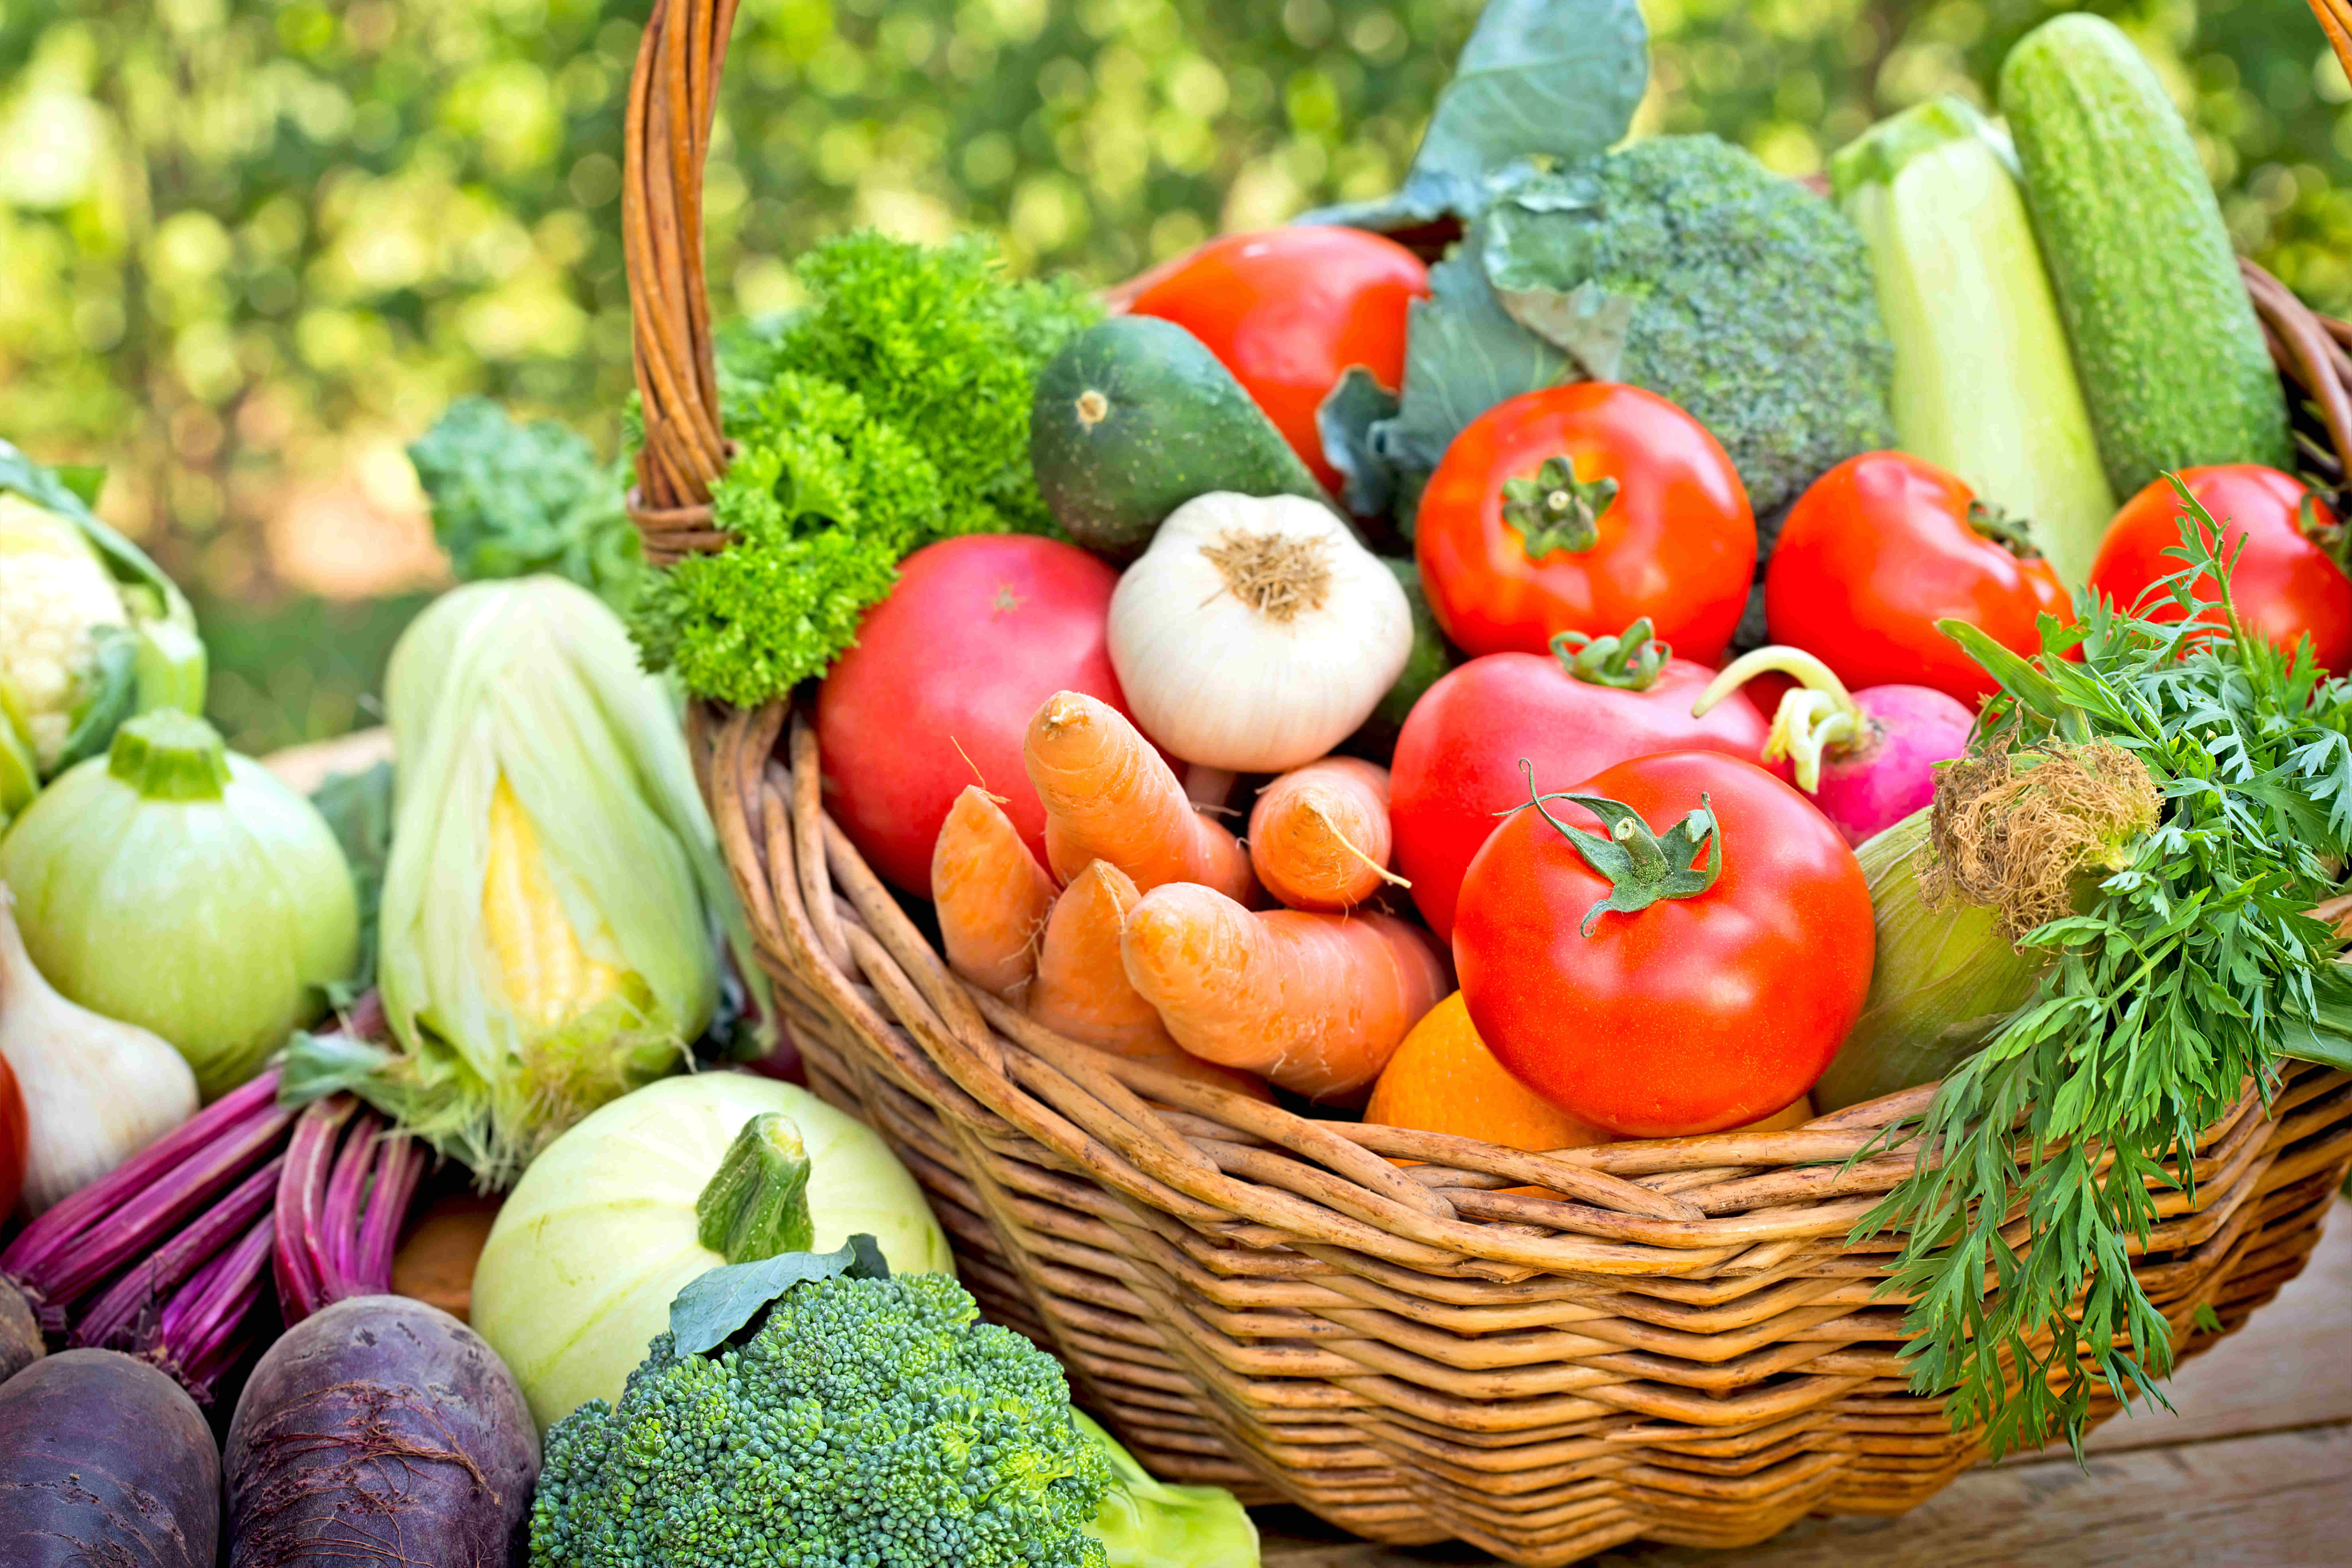 Vegetarian Diets and Anemia